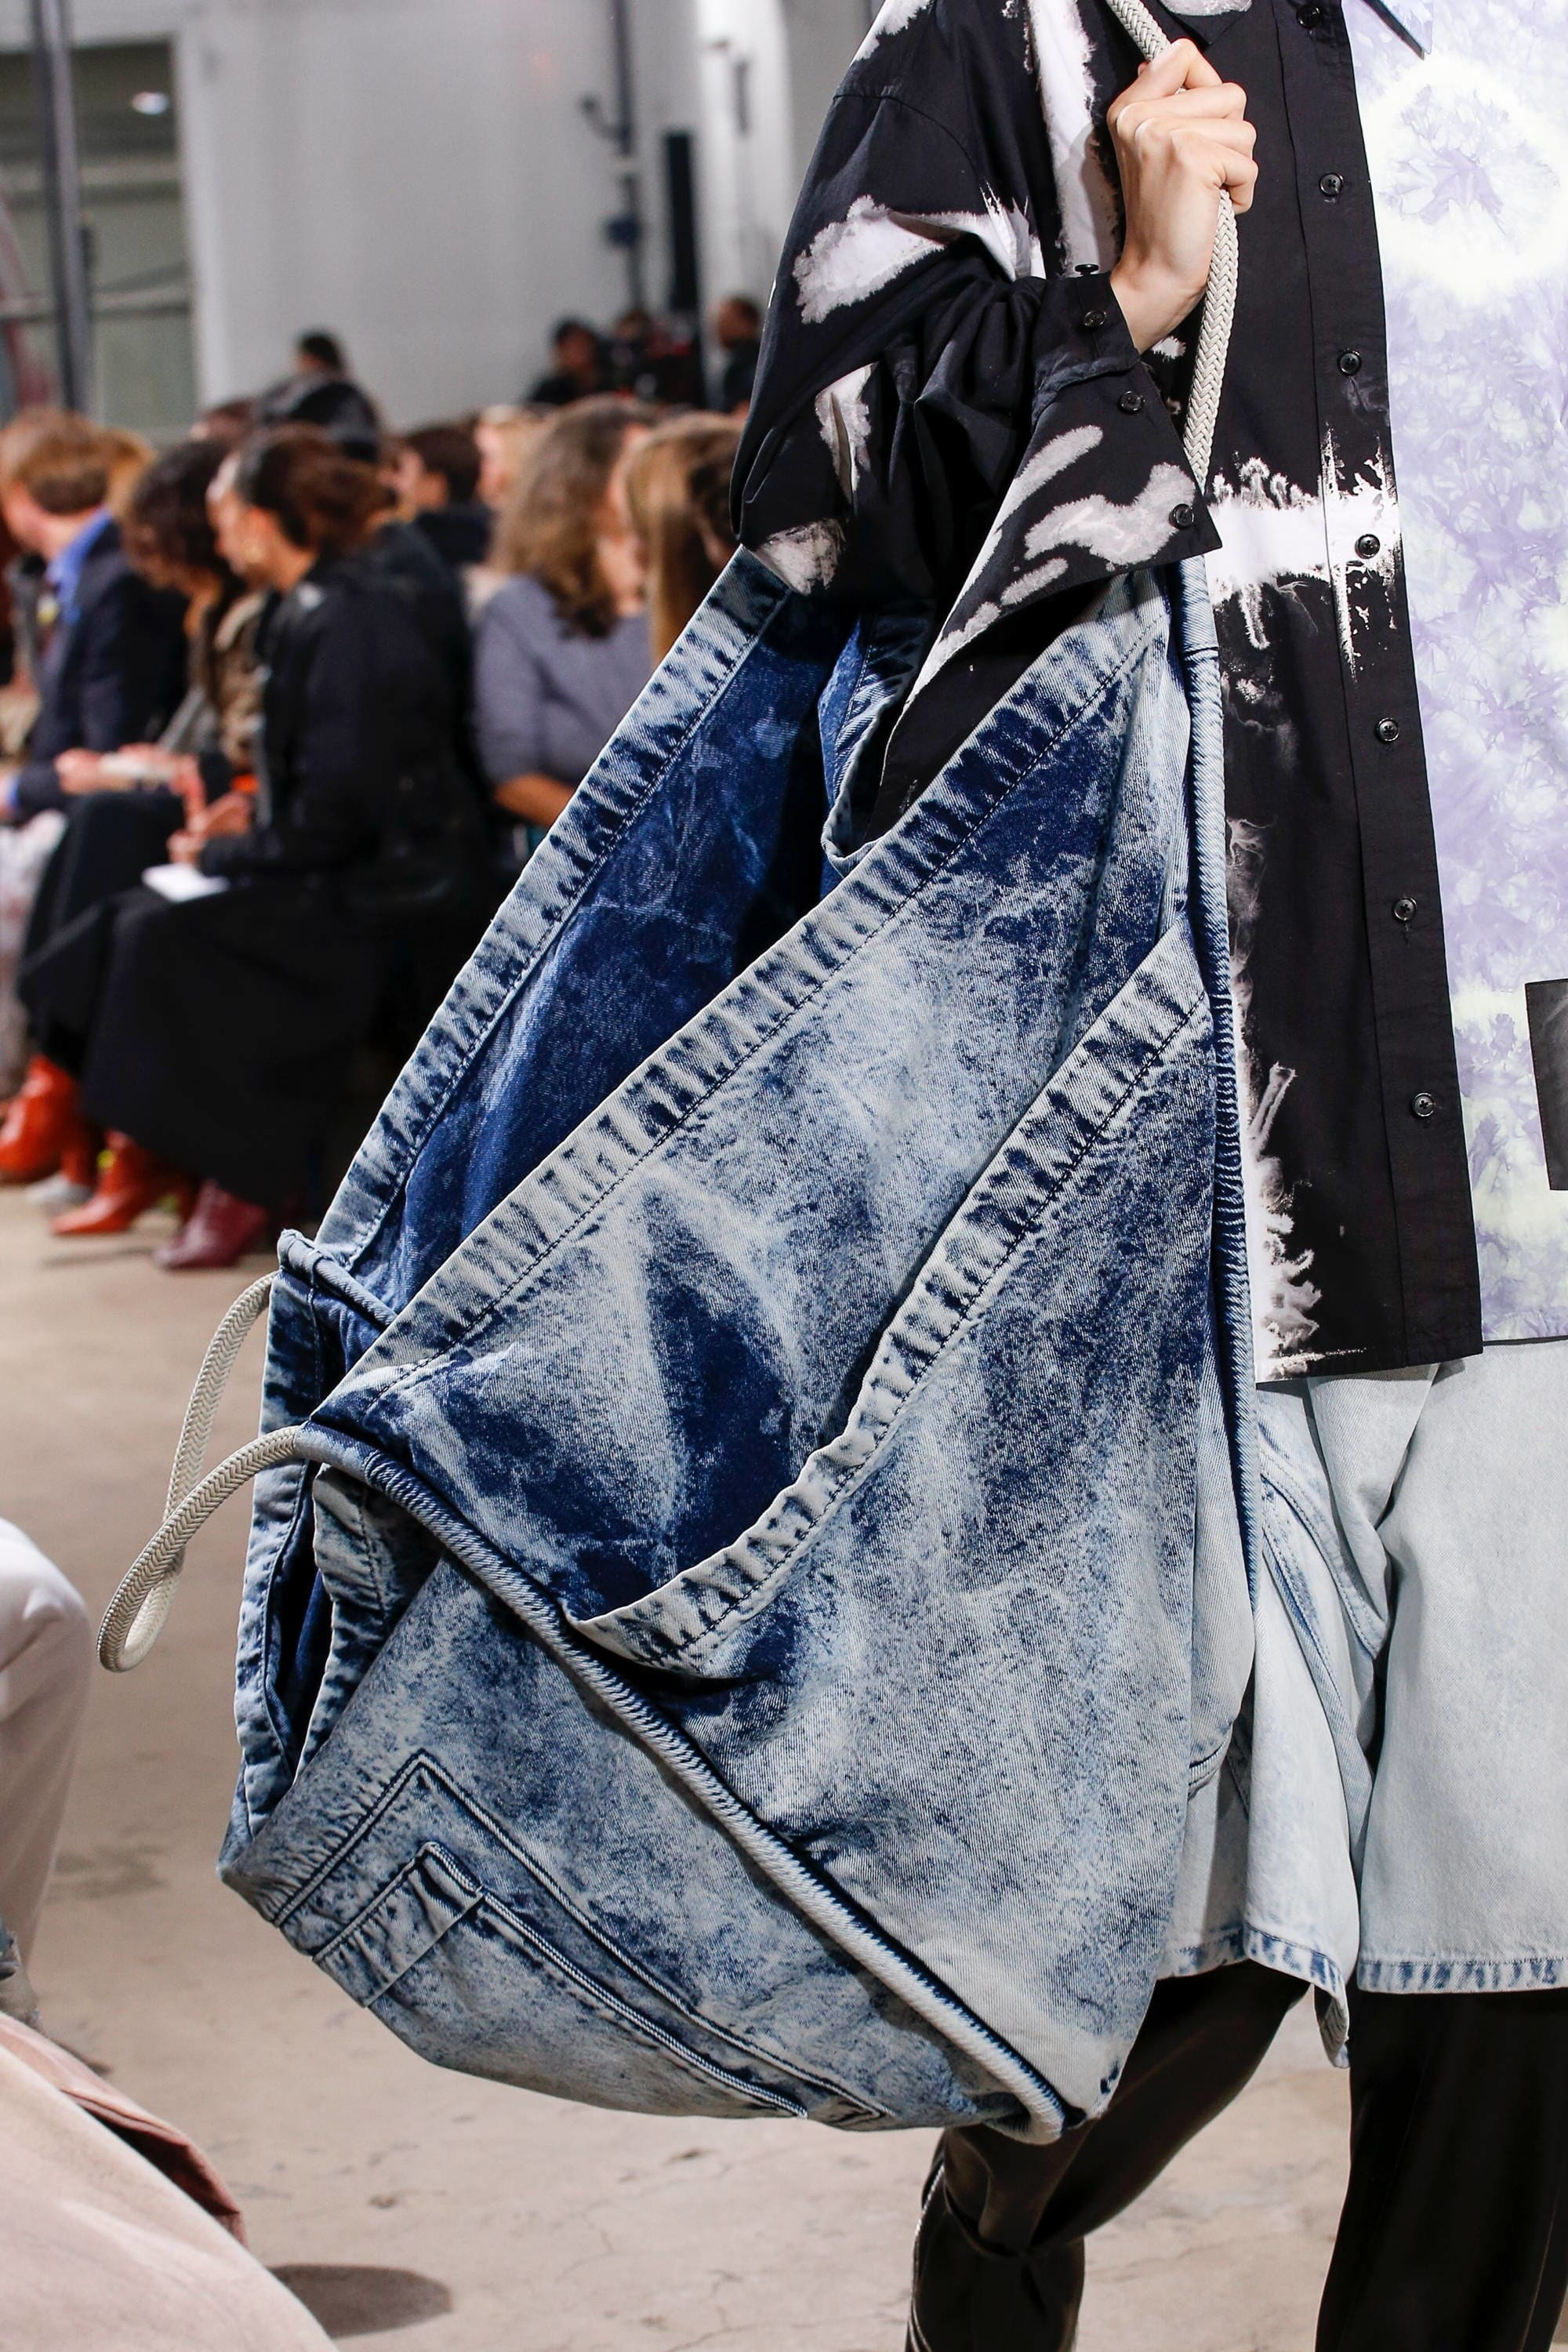 Proenza Schouler Spring Summer 2019 Runway Bag Collection